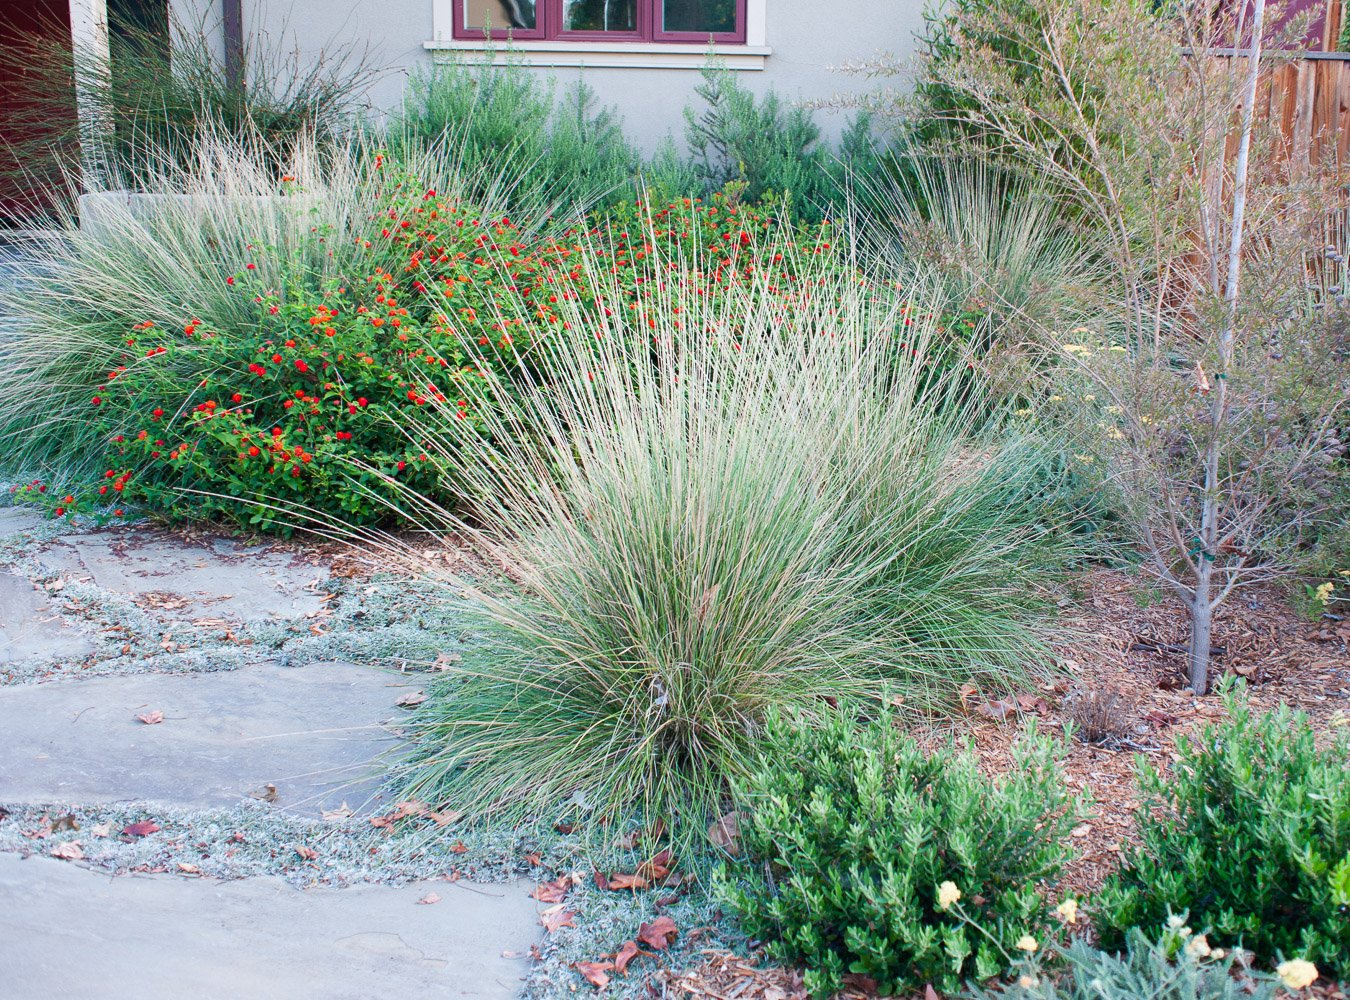 Ornamental grasses added structure